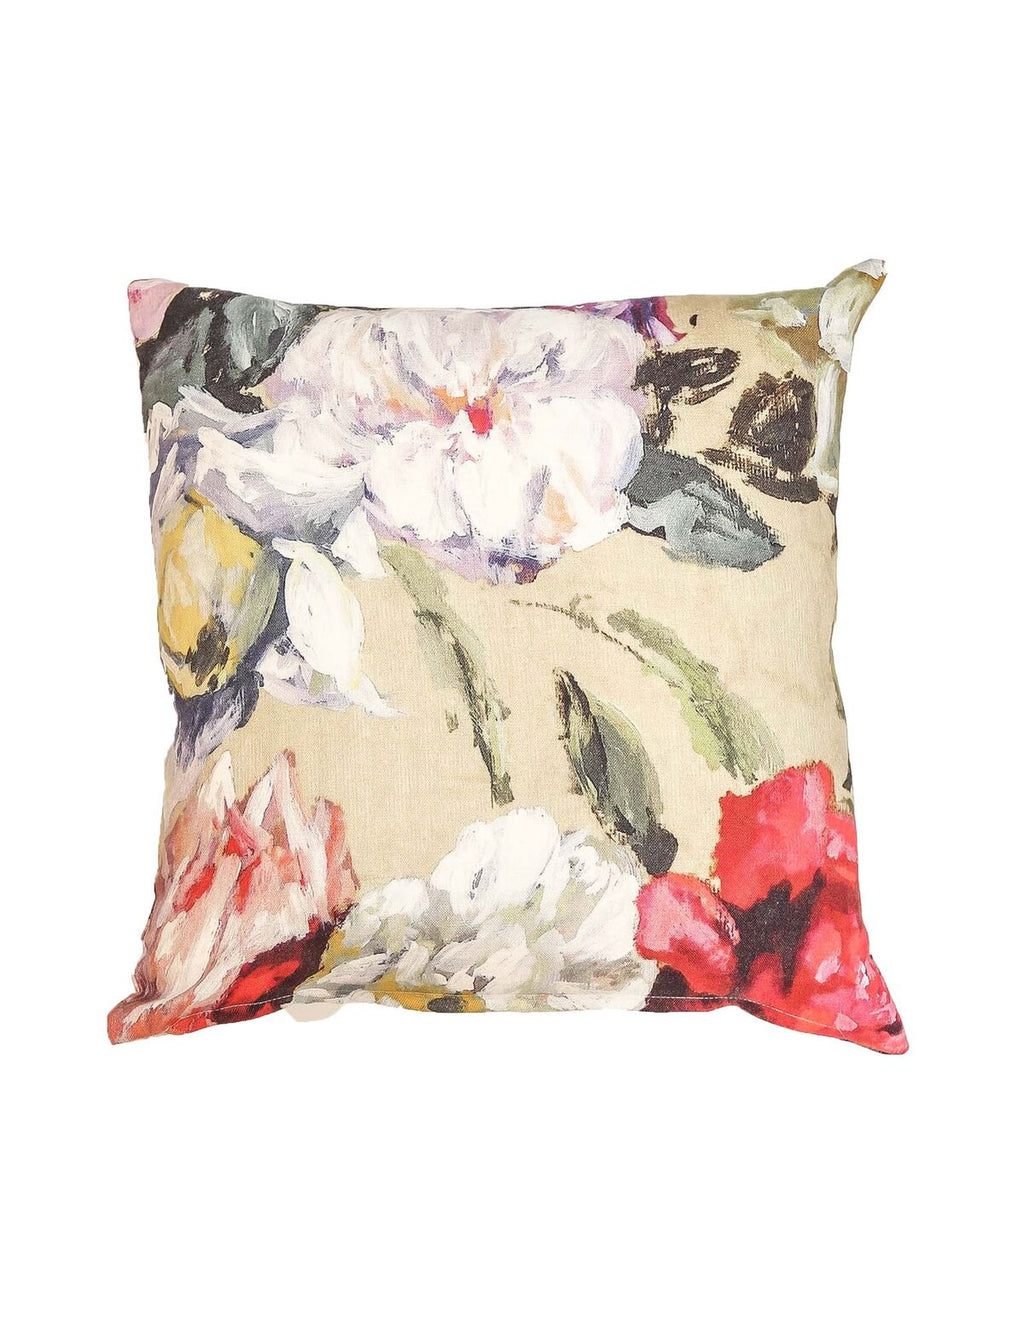 Signature Floral Cushion